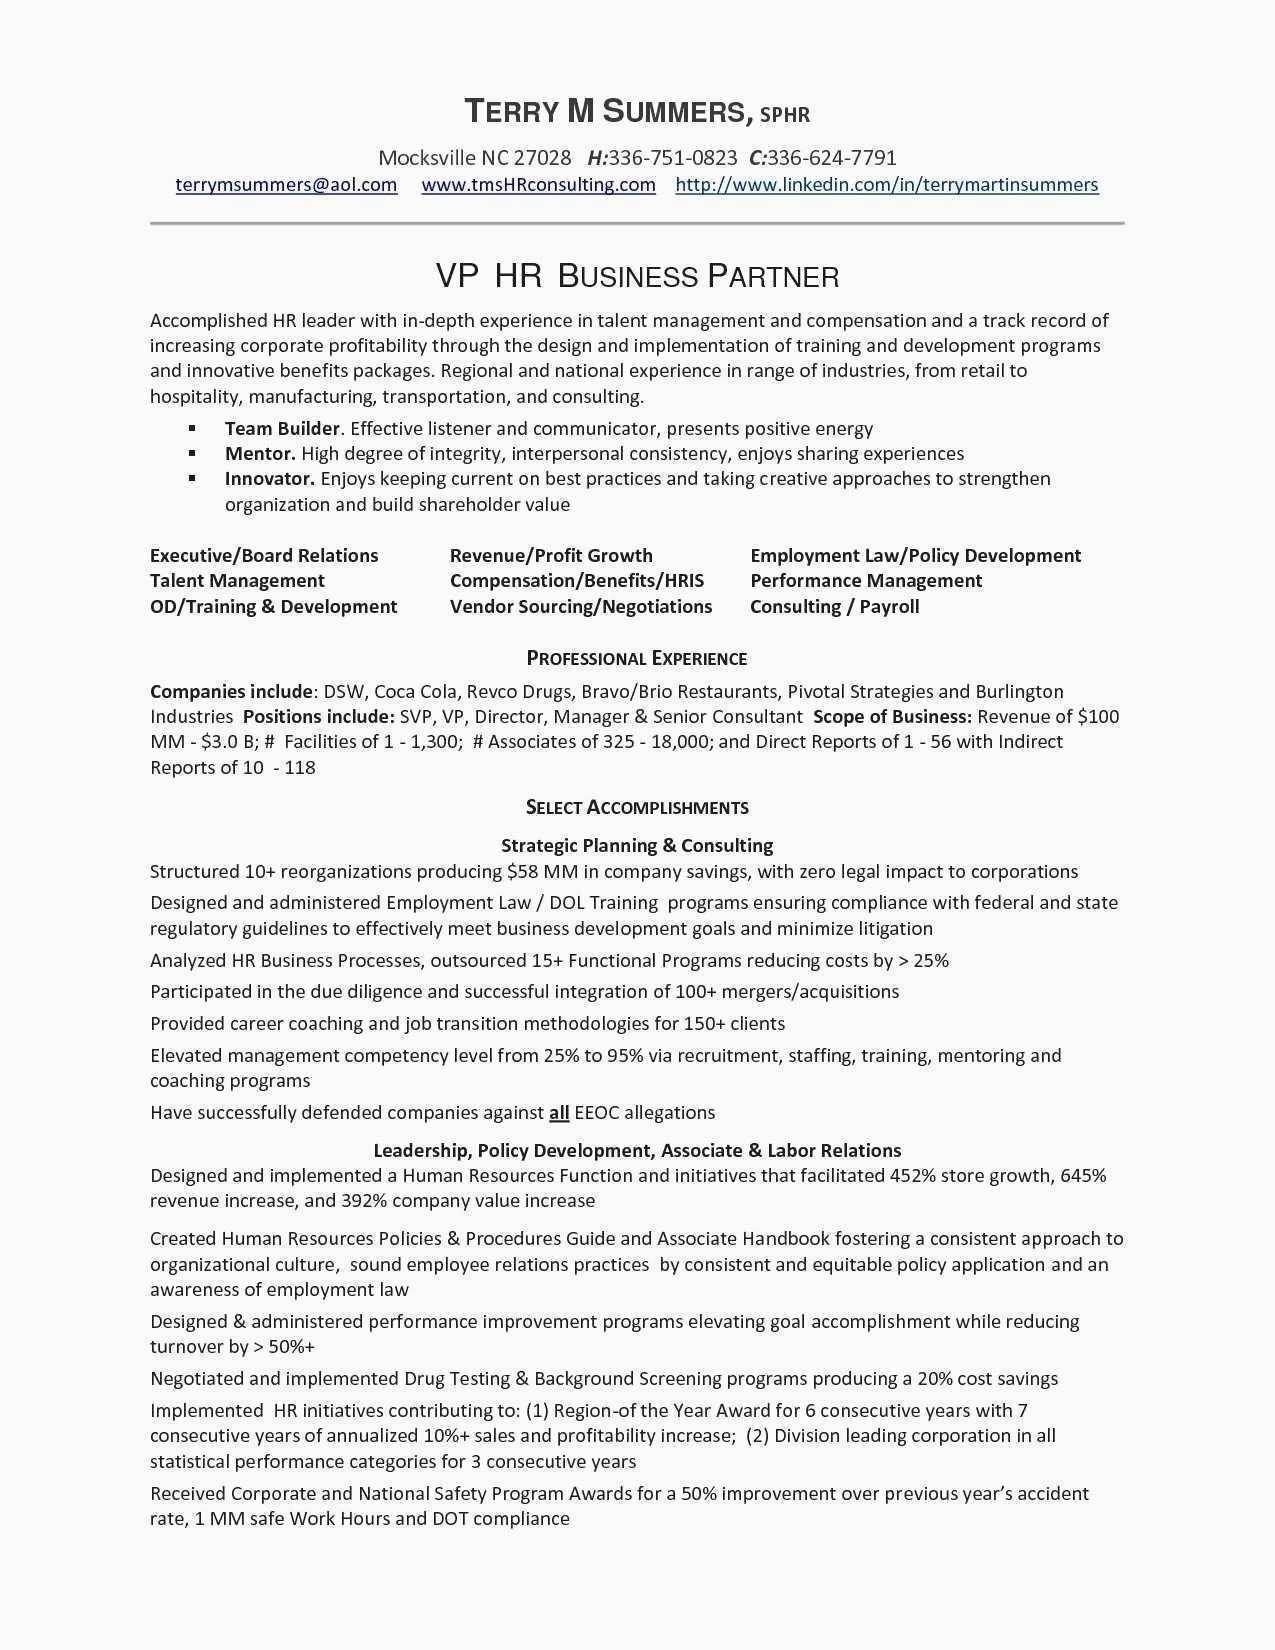 Free Business Partnership Agreement Template Uk